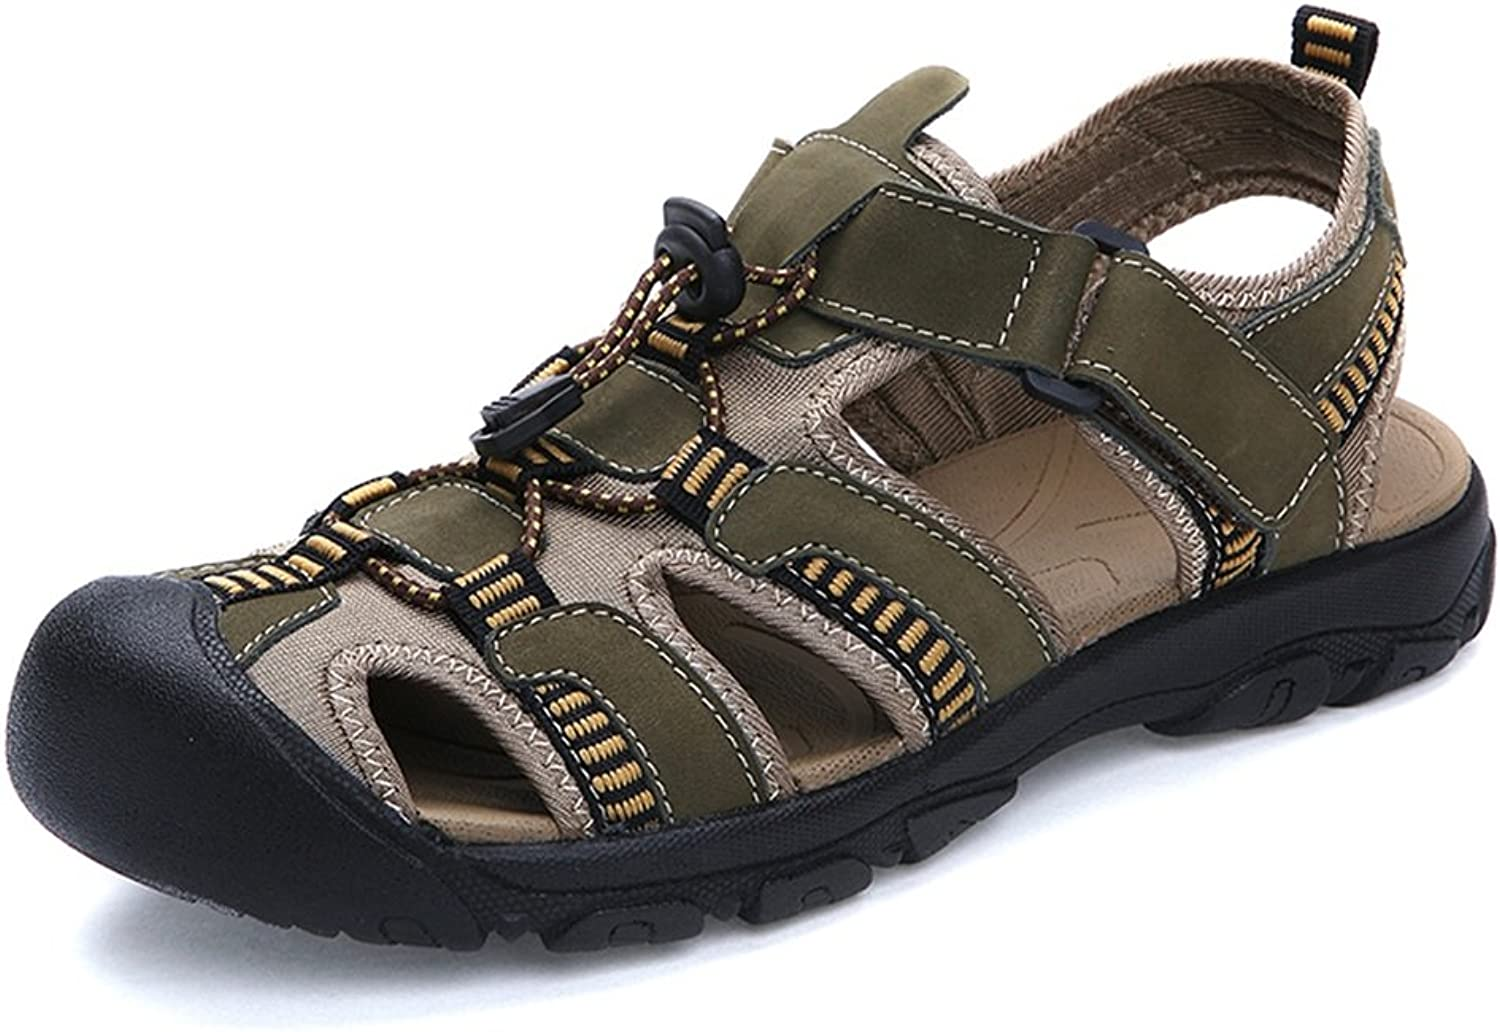 HHF Flat Sandals & Slippers, Men's Ox Skin Summer Beach Sandals, Breathable Magic Tape Foot Up to Size 48EU